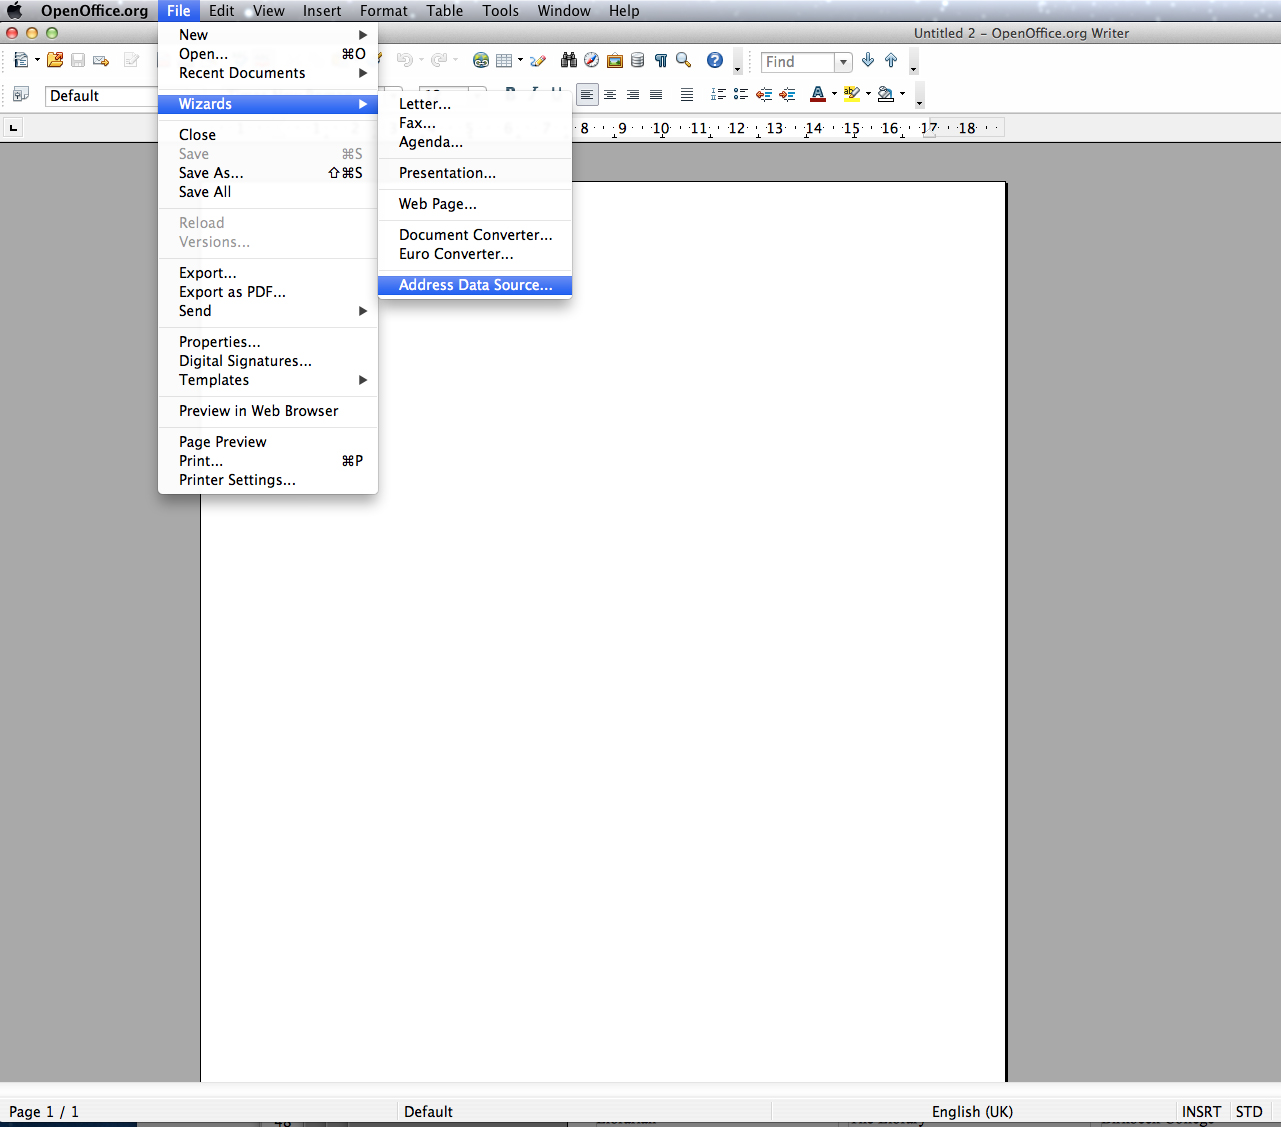 OpenOffice: How To Mail Merge Address Labels From An Excel